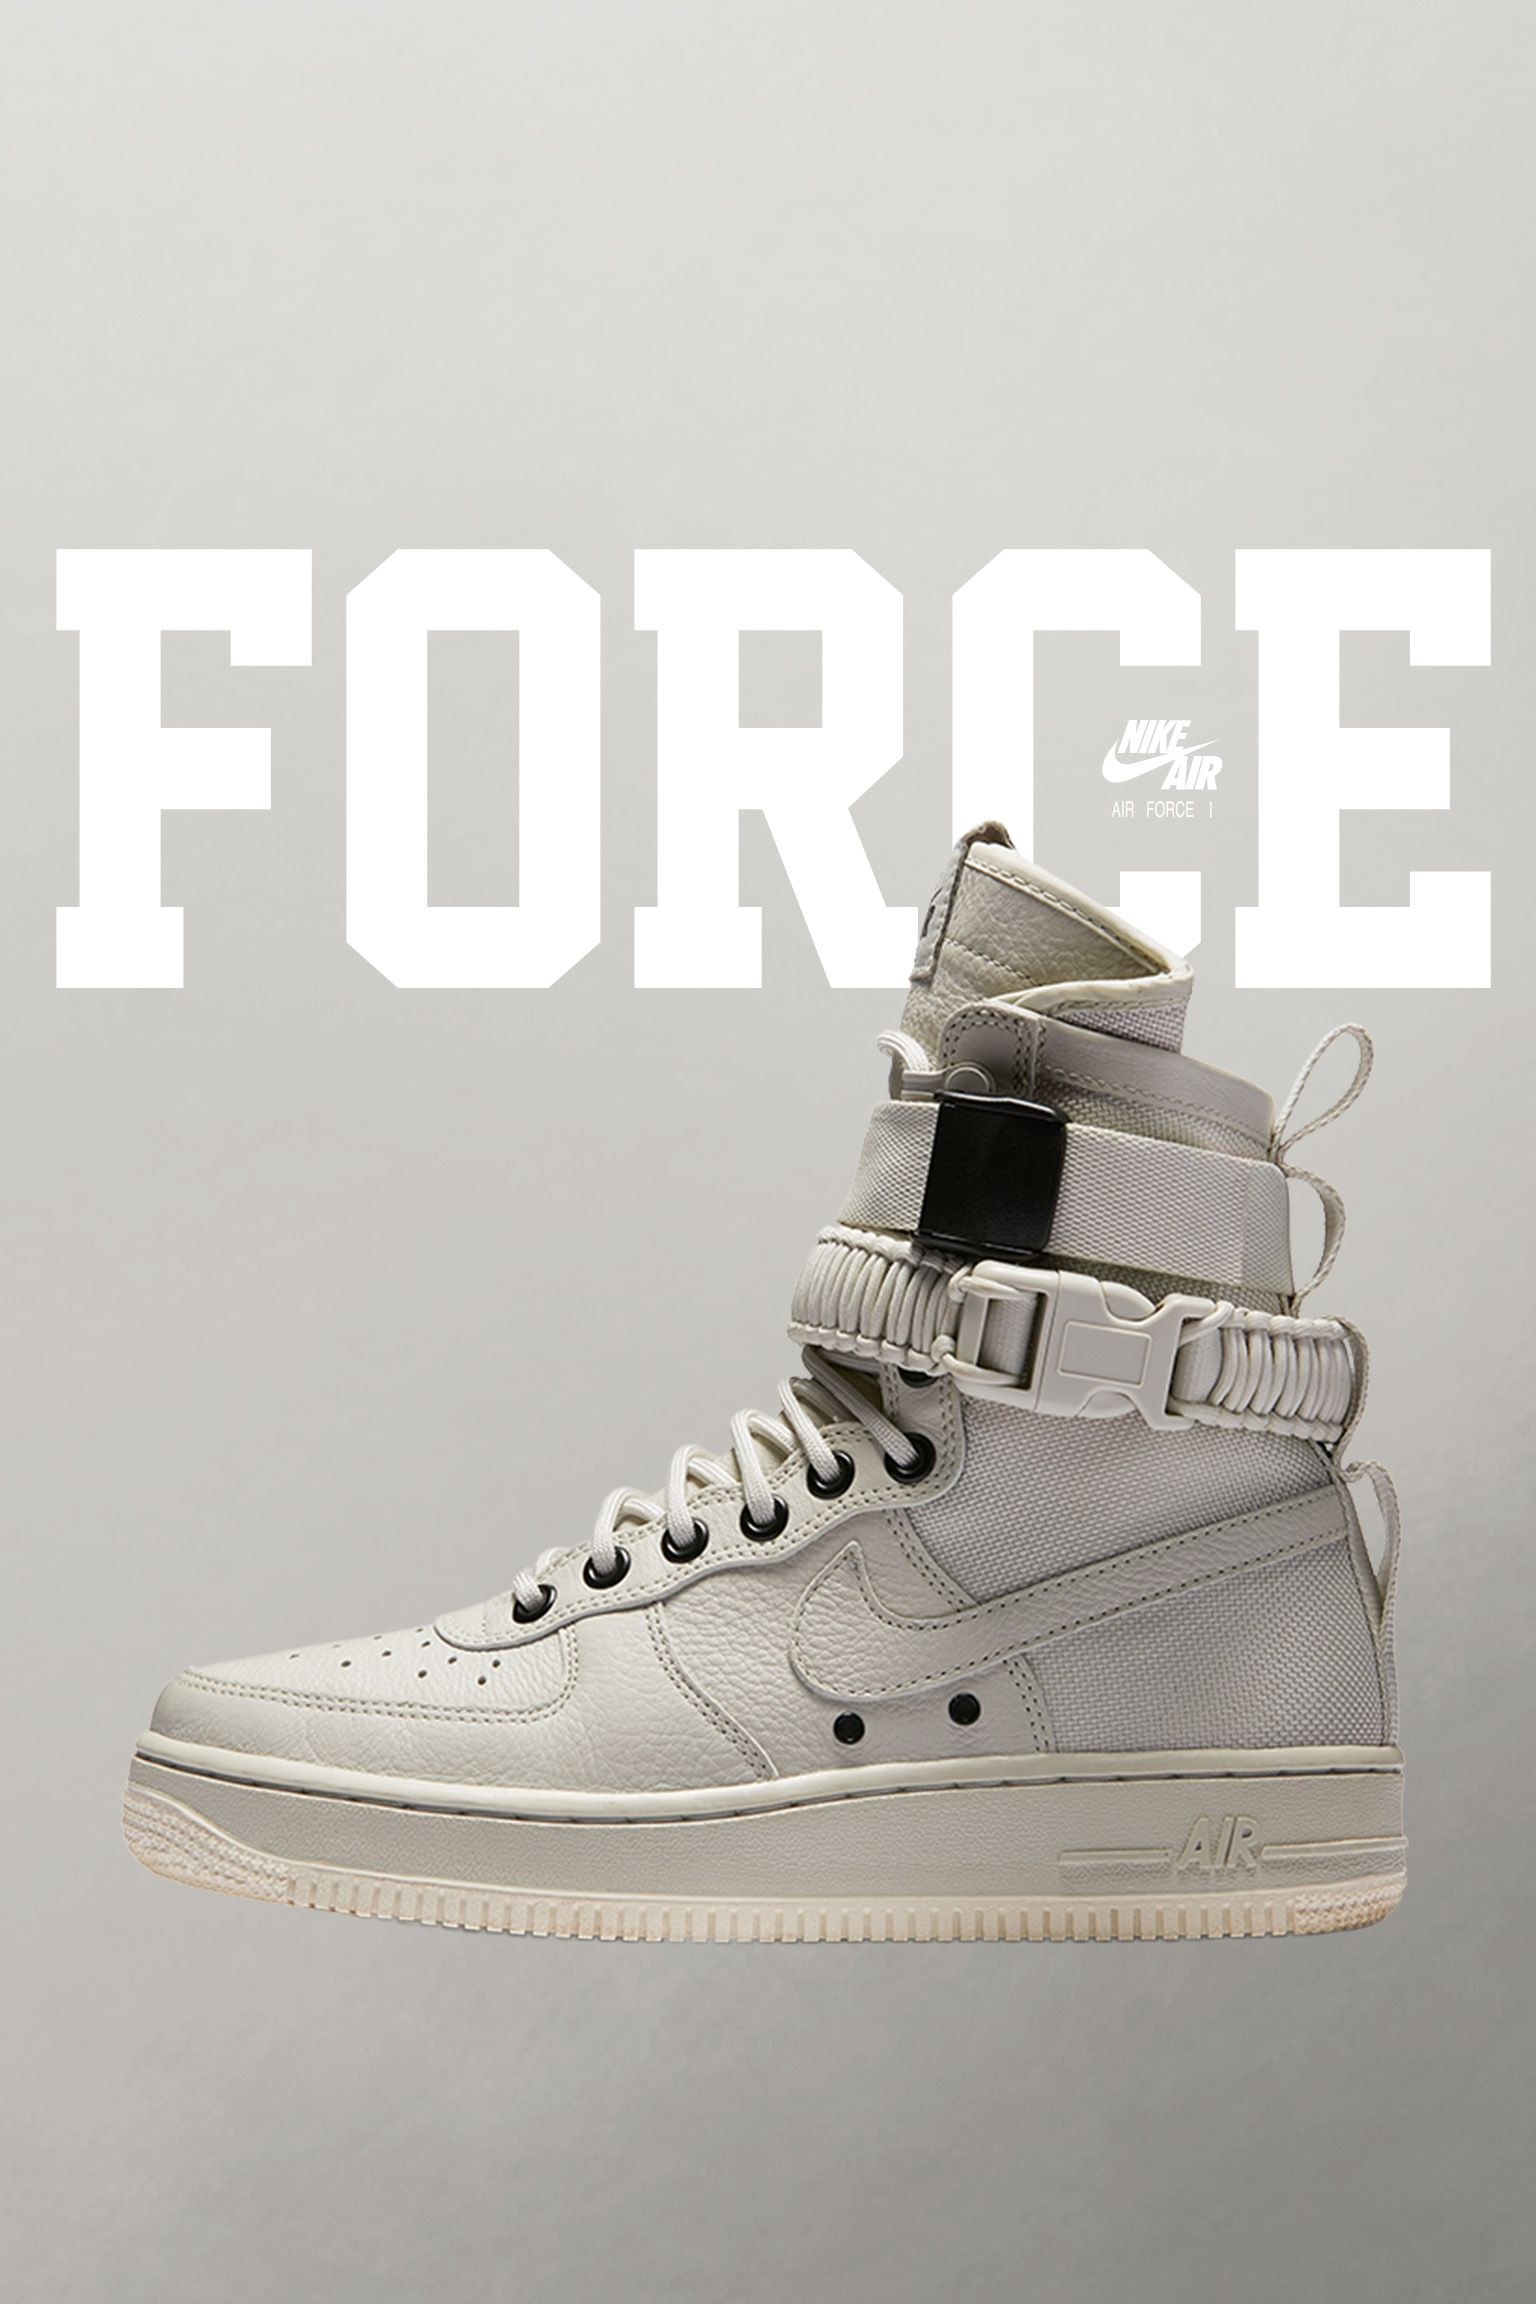 Nike Special Field Air Force 1 'Light Bone & Sail' voor dames. Releasedatum